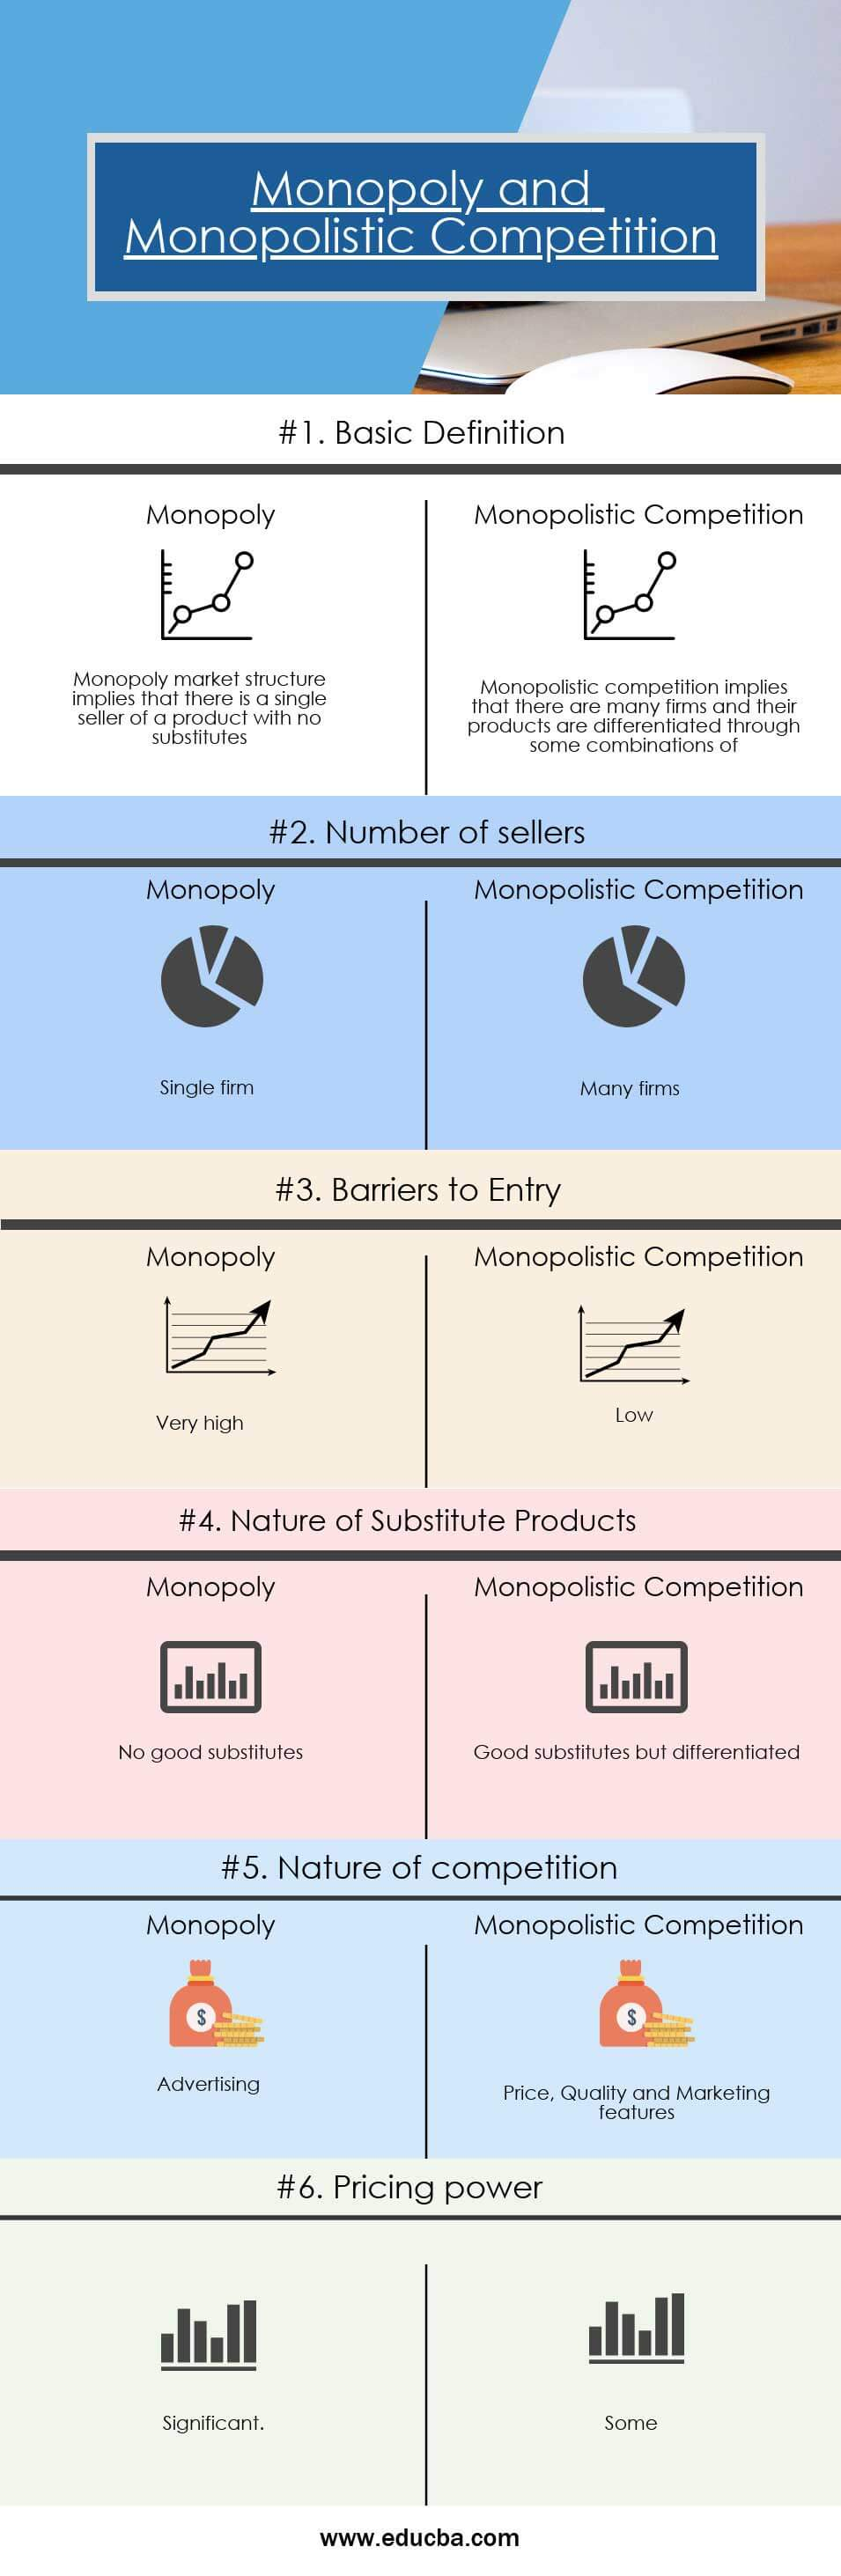 Comparison between Monopoly and Monopolistic Competition